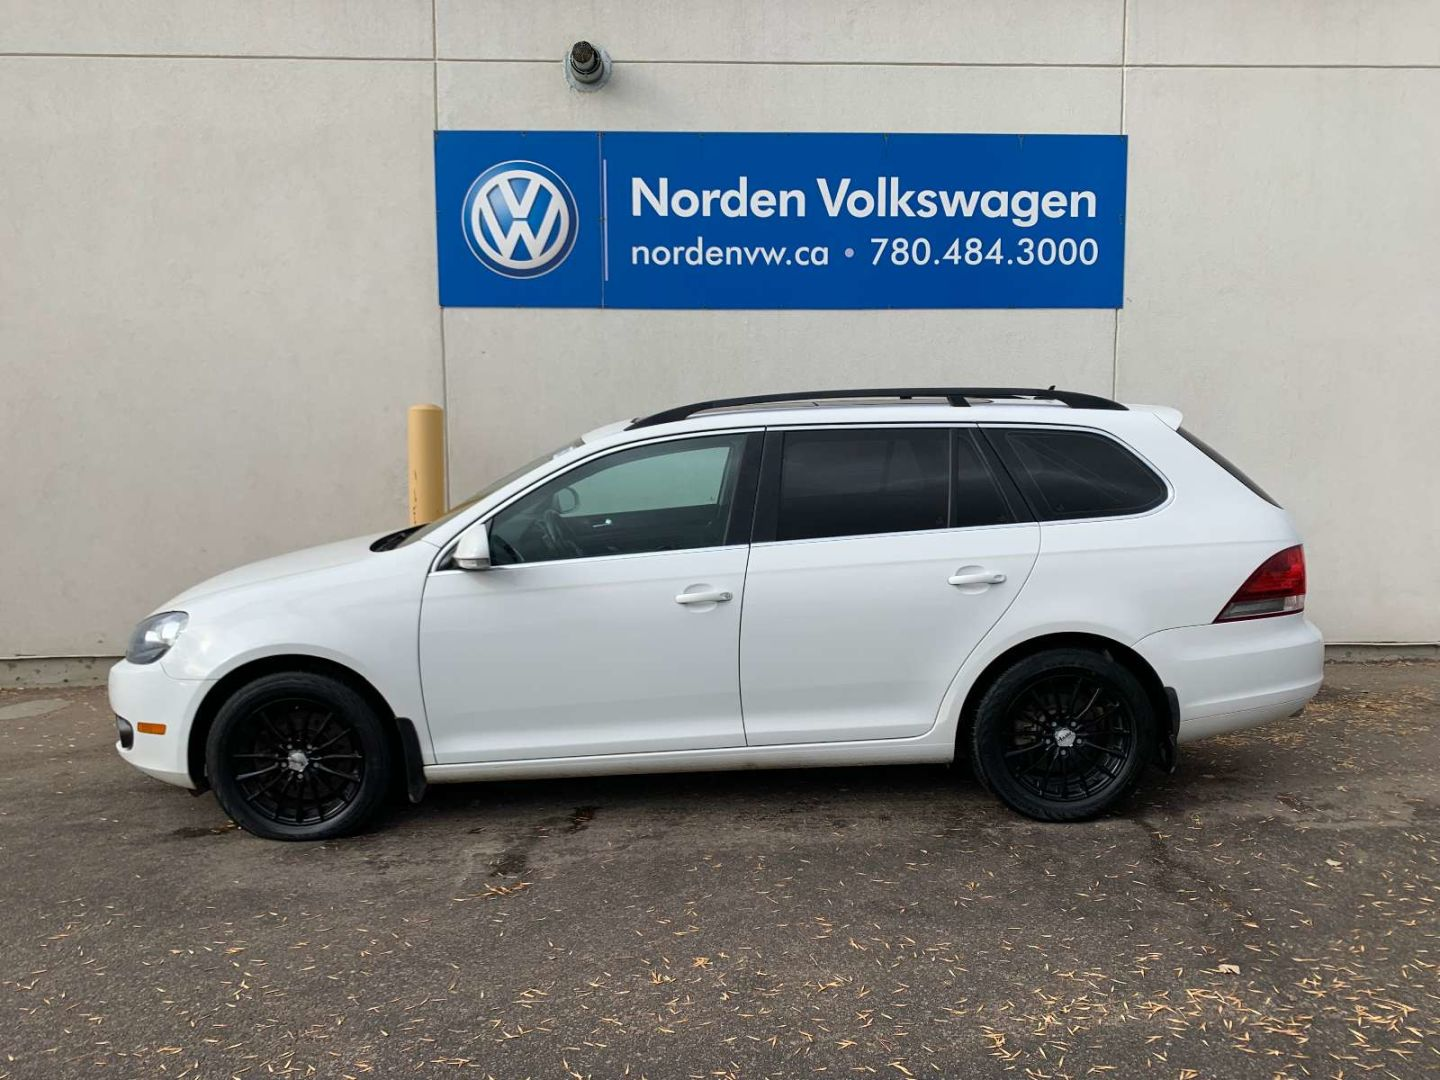 2013 Volkswagen Golf Wagon Comfortline for sale in Edmonton, Alberta